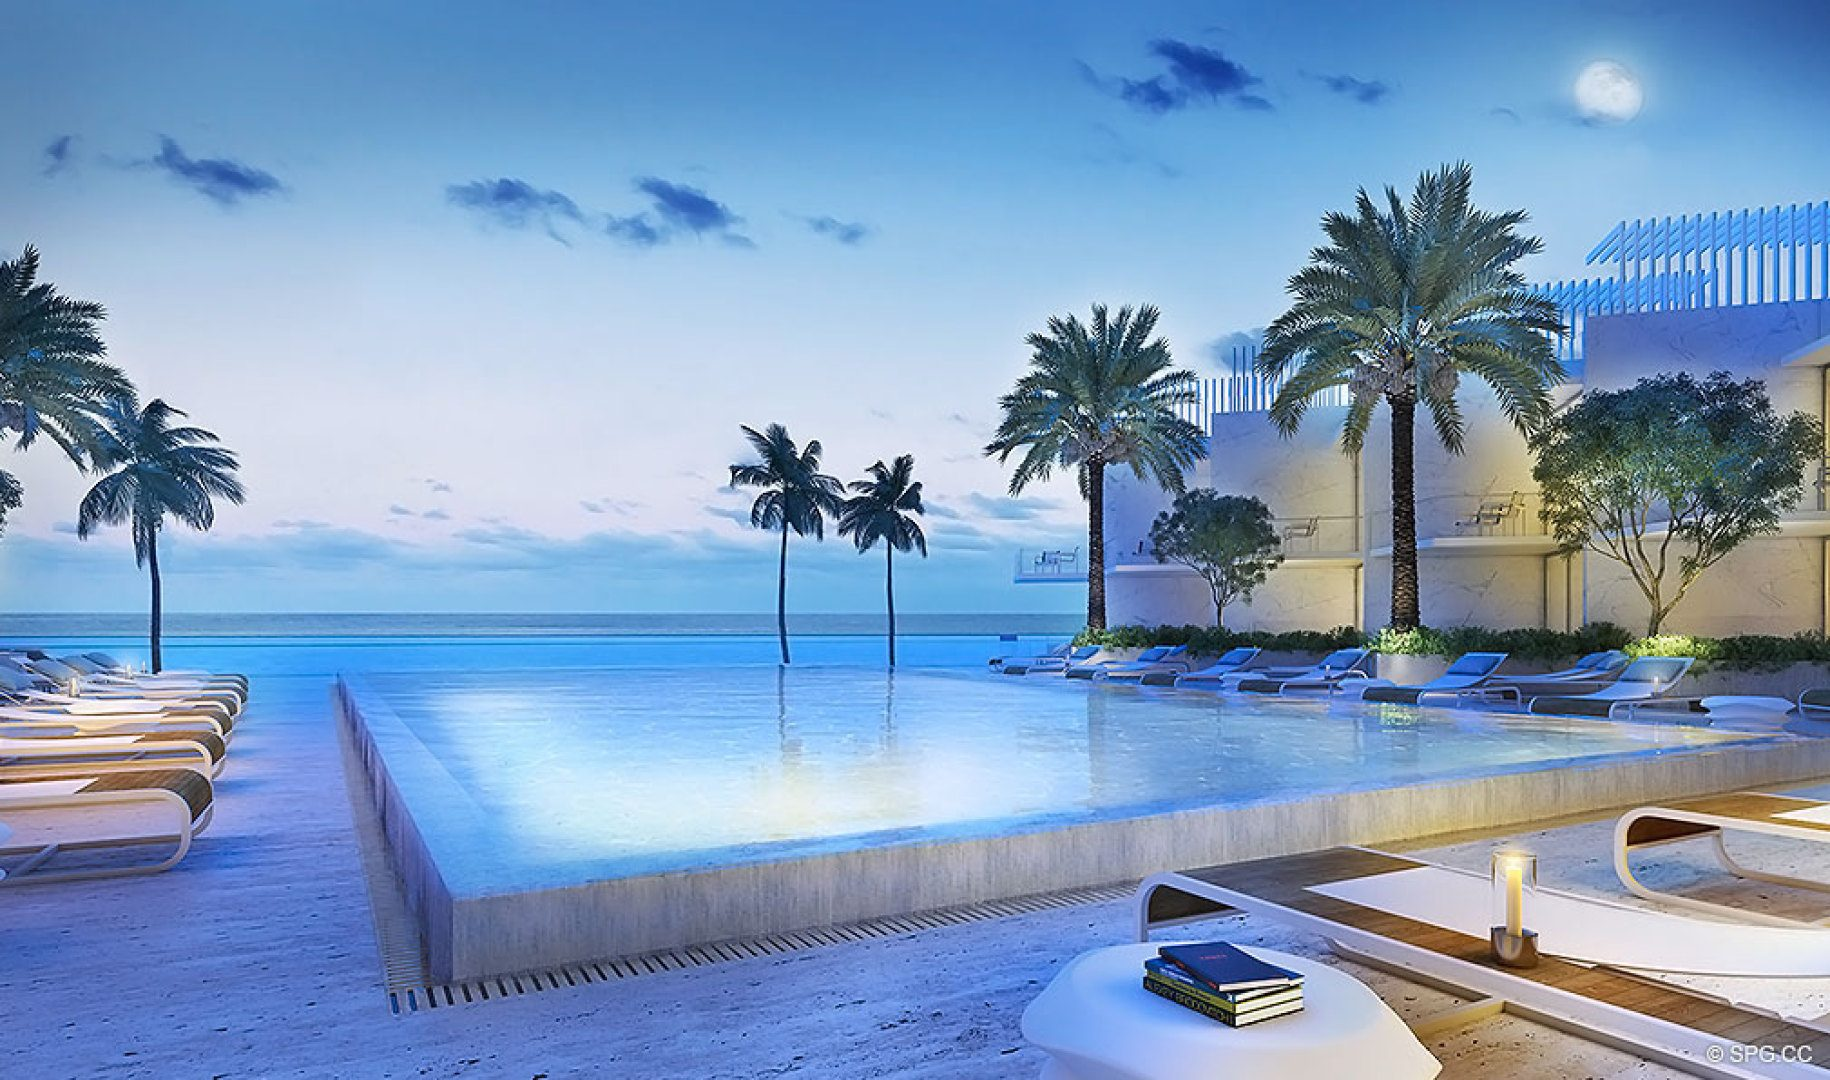 Pool Area at Turnberry Ocean Club, Luxury Oceanfront Condos Located at 18501 Collins Avenue, Sunny Isles Beach, Miami 33160